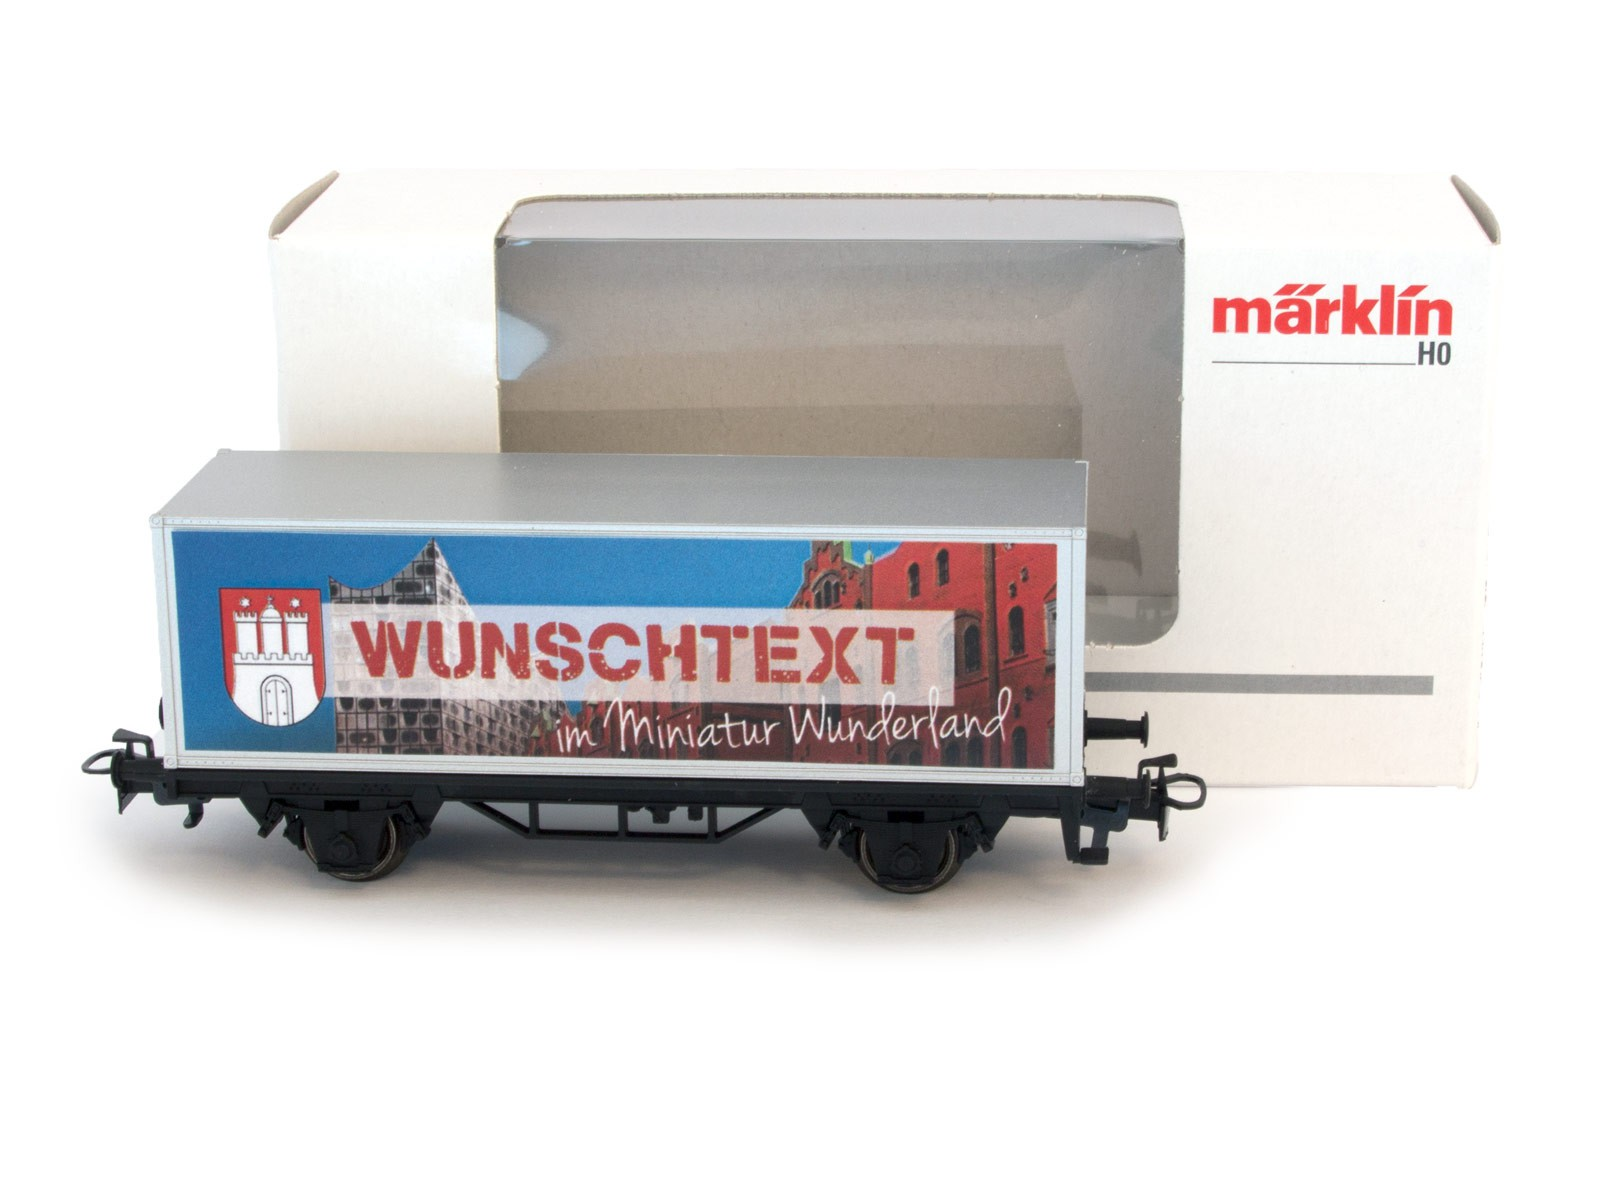 Miniatur Wunderland/Märklin H0 Special Wagon with YOUR NAME